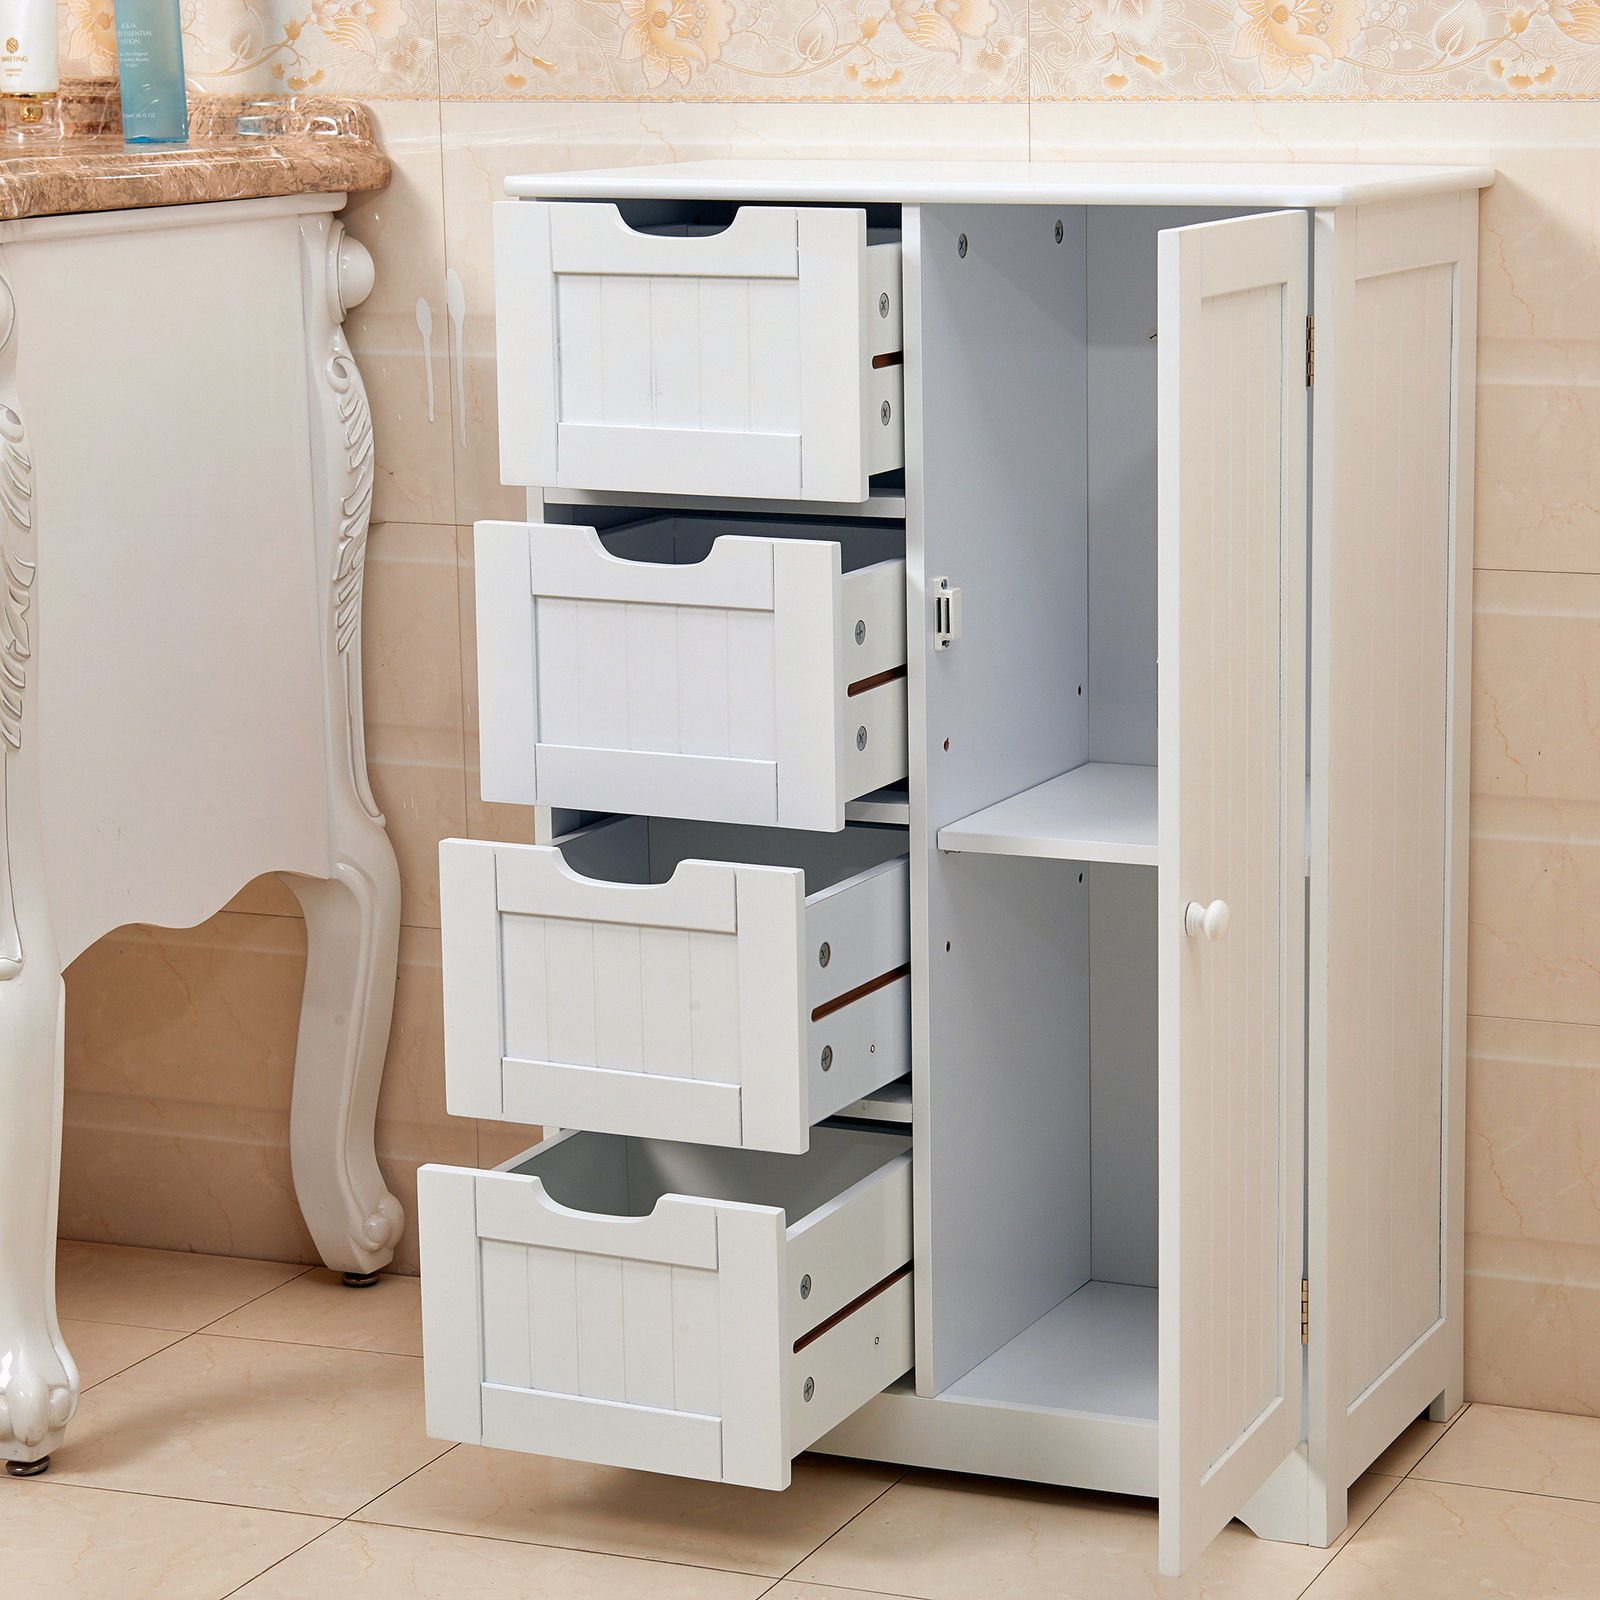 new white wooden cabinet with 4 drawers cupboard storage bathroom or